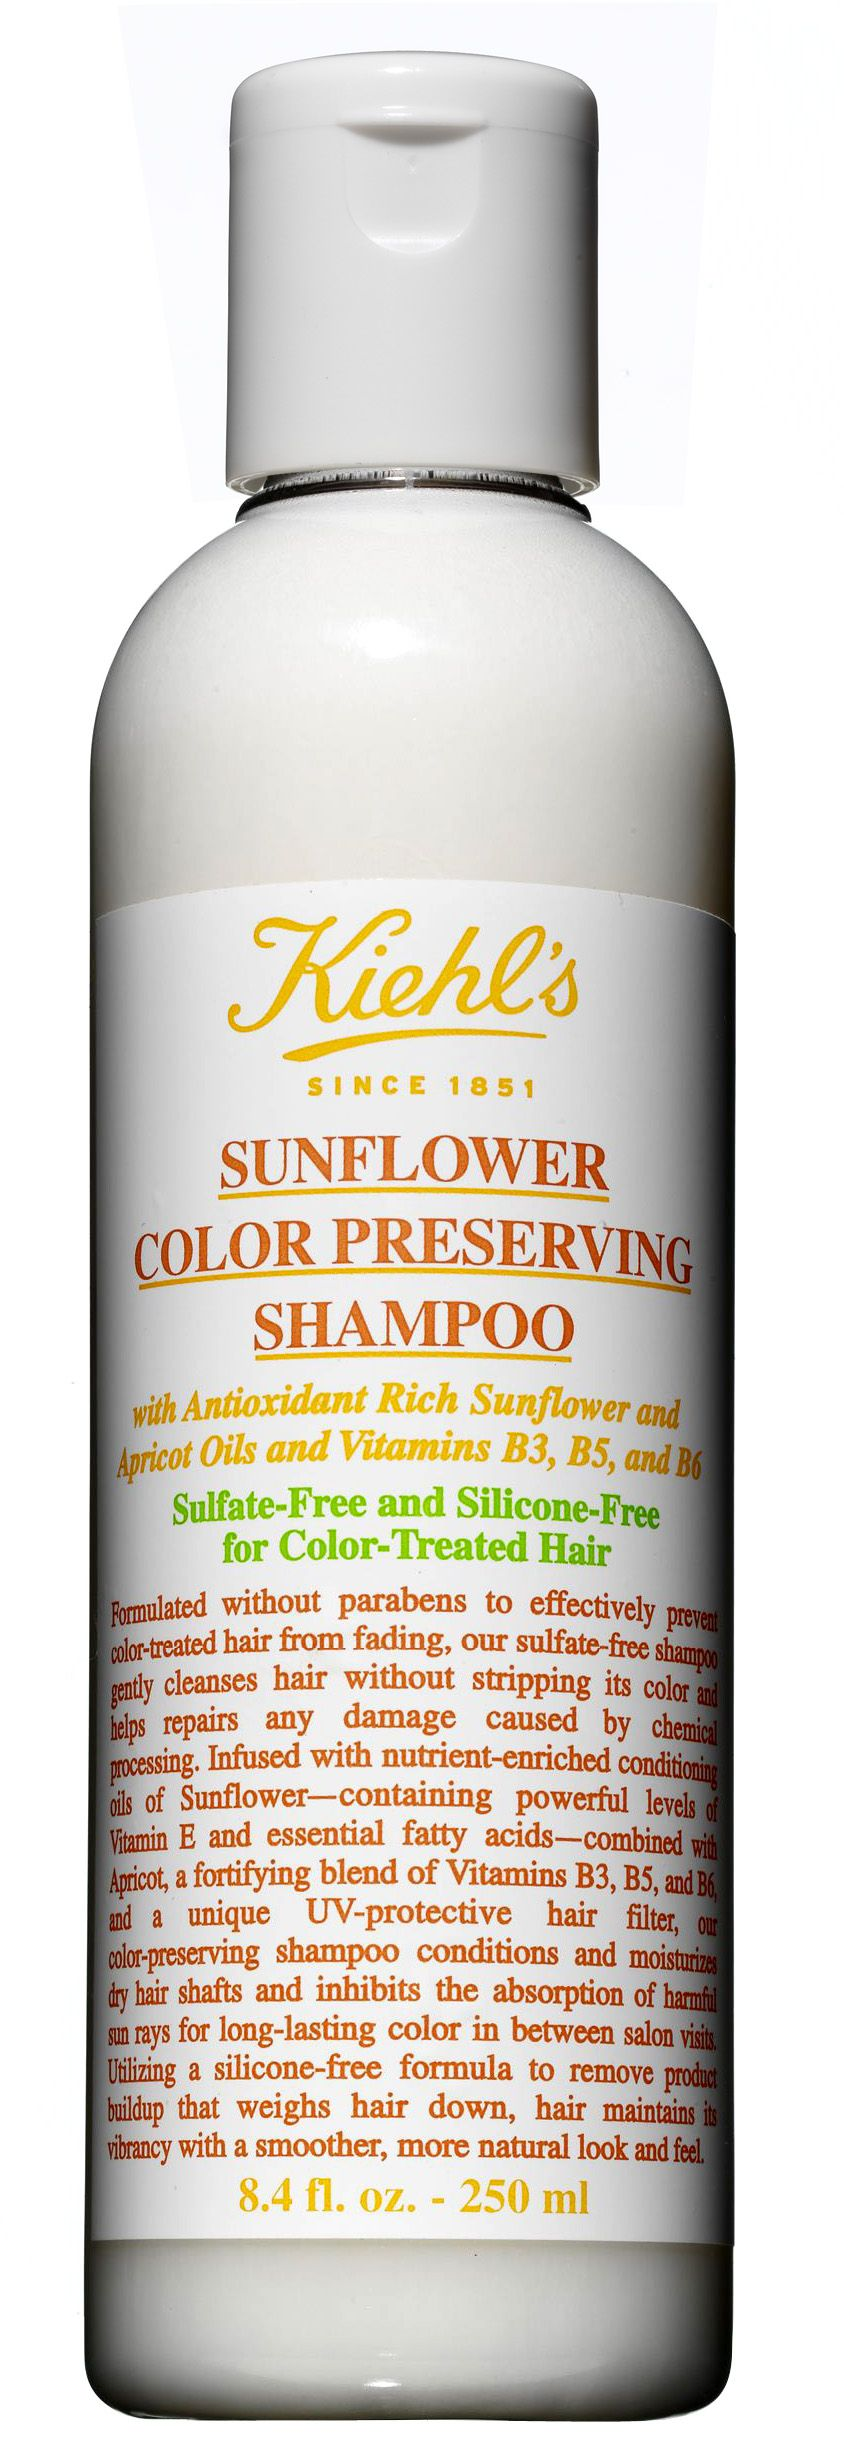 Kiehls Sunflower Color Preserving Shampoo 250ml